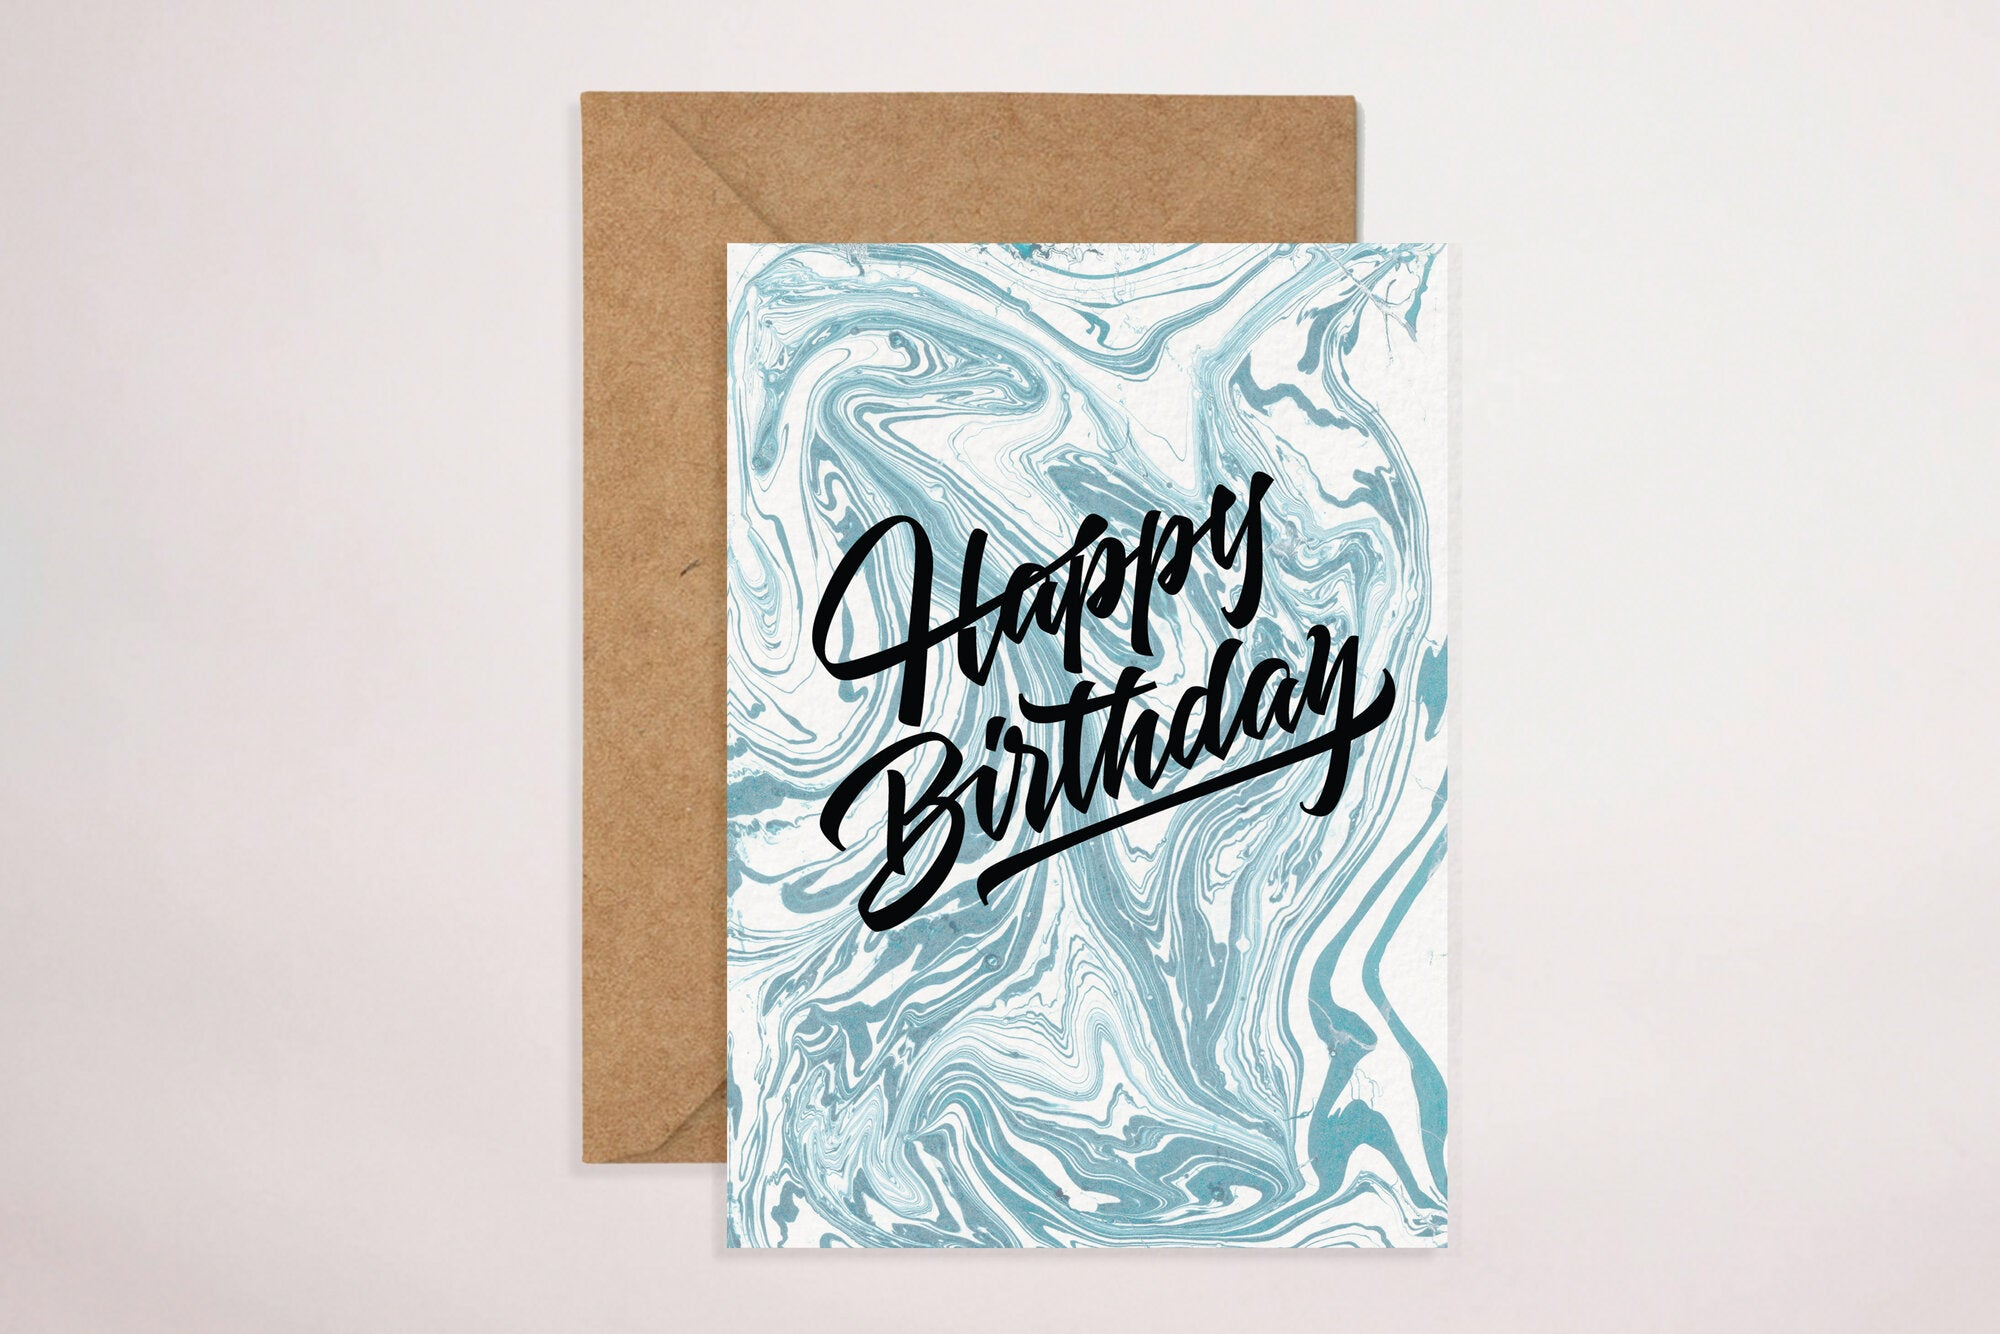 Happy Birthday - Blue Swirls (Greeting Card)